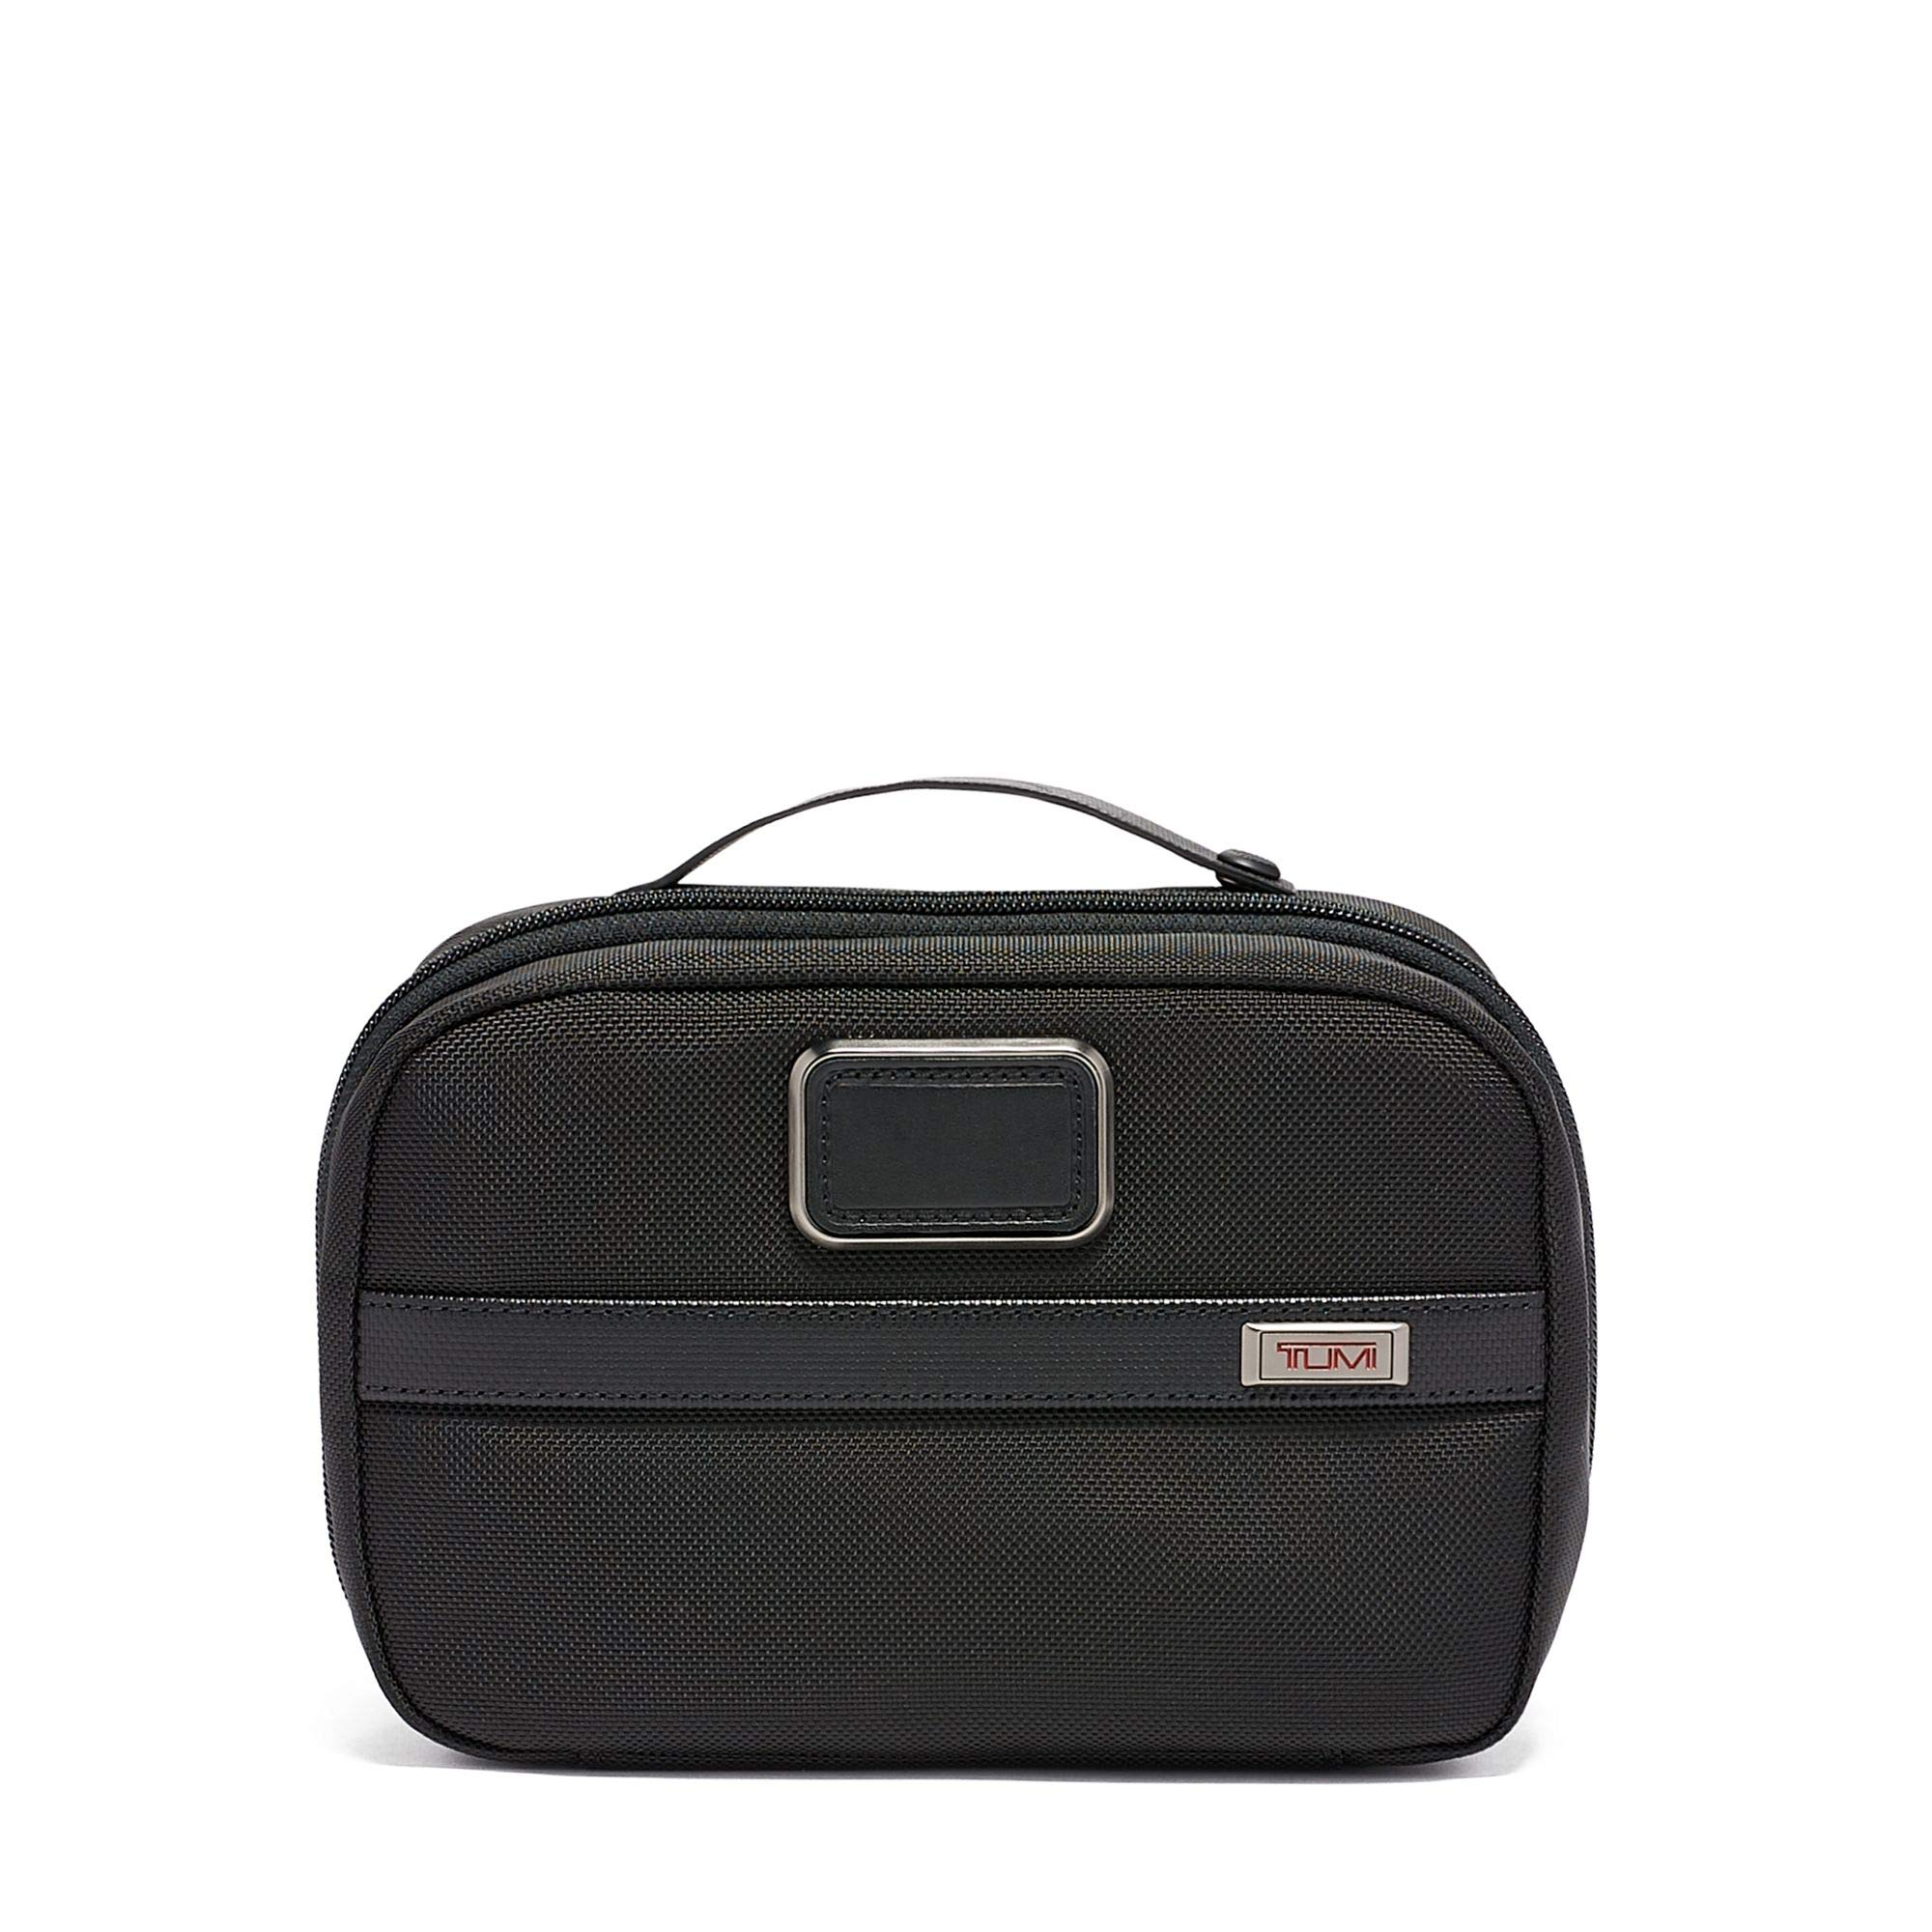 TUMI - Alpha 3 Split Travel Kit - Luggage Accessories Toiletry Bag for Men and Women - Black by TUMI